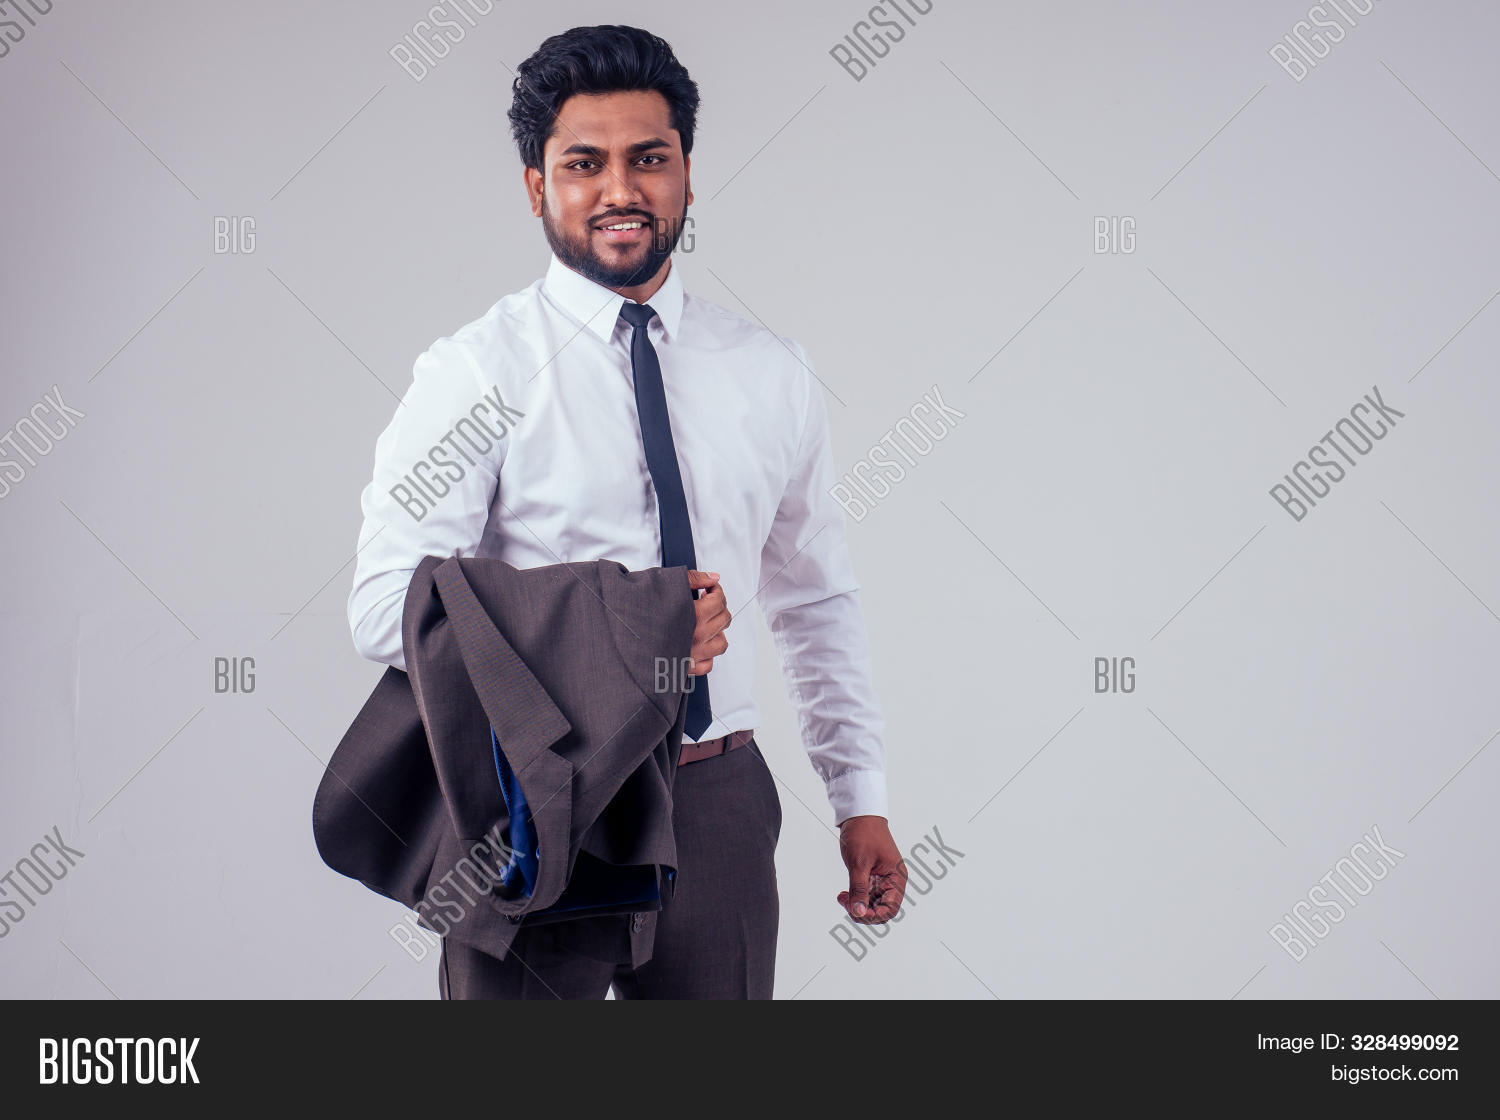 adult,arab,asian,attractive,beard,boss,business,camera,career,celebration,ceo,clothes,confident,corporate,eastern,employee,entrepreneur,excited,executive,fashion,happy,indian,jacket,job,leader,leadership,looking,male,man,manager,modern,office,outfit,people,person,portrait,professional,proud,shirt,smile,stylish,success,successful,suit,tie,triumph,victory,work,worker,young